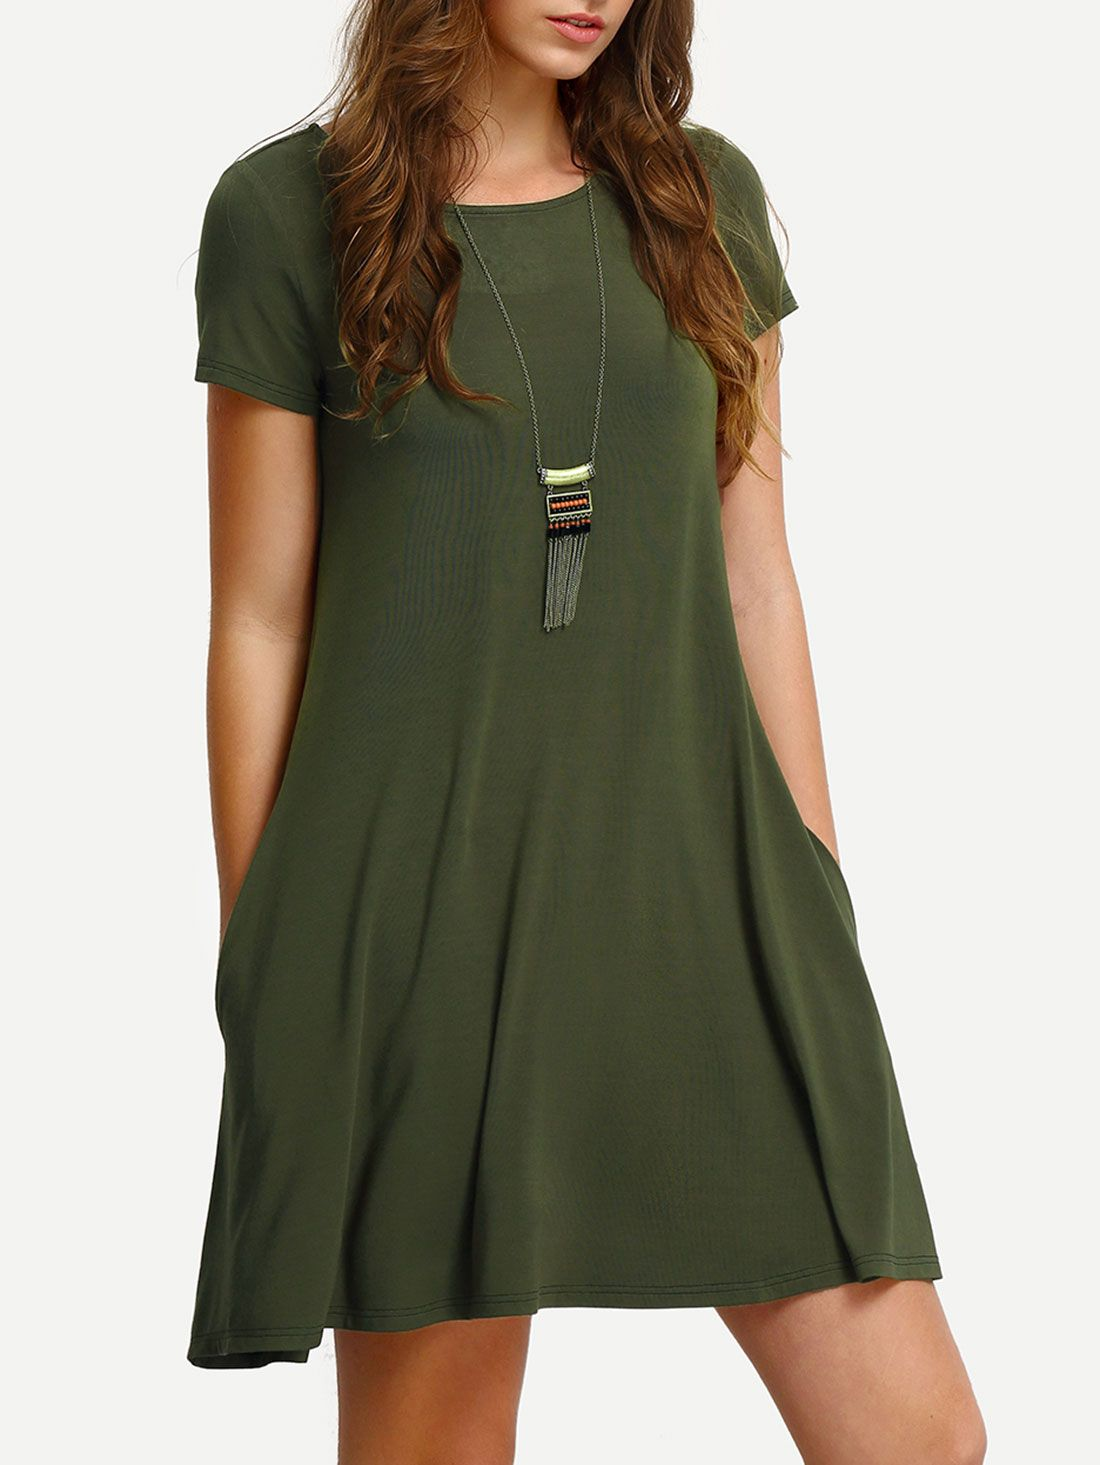 Short Dress OnlineShein Green Offers Army Sleeve Shift Shop Casual Aq4R3L5j